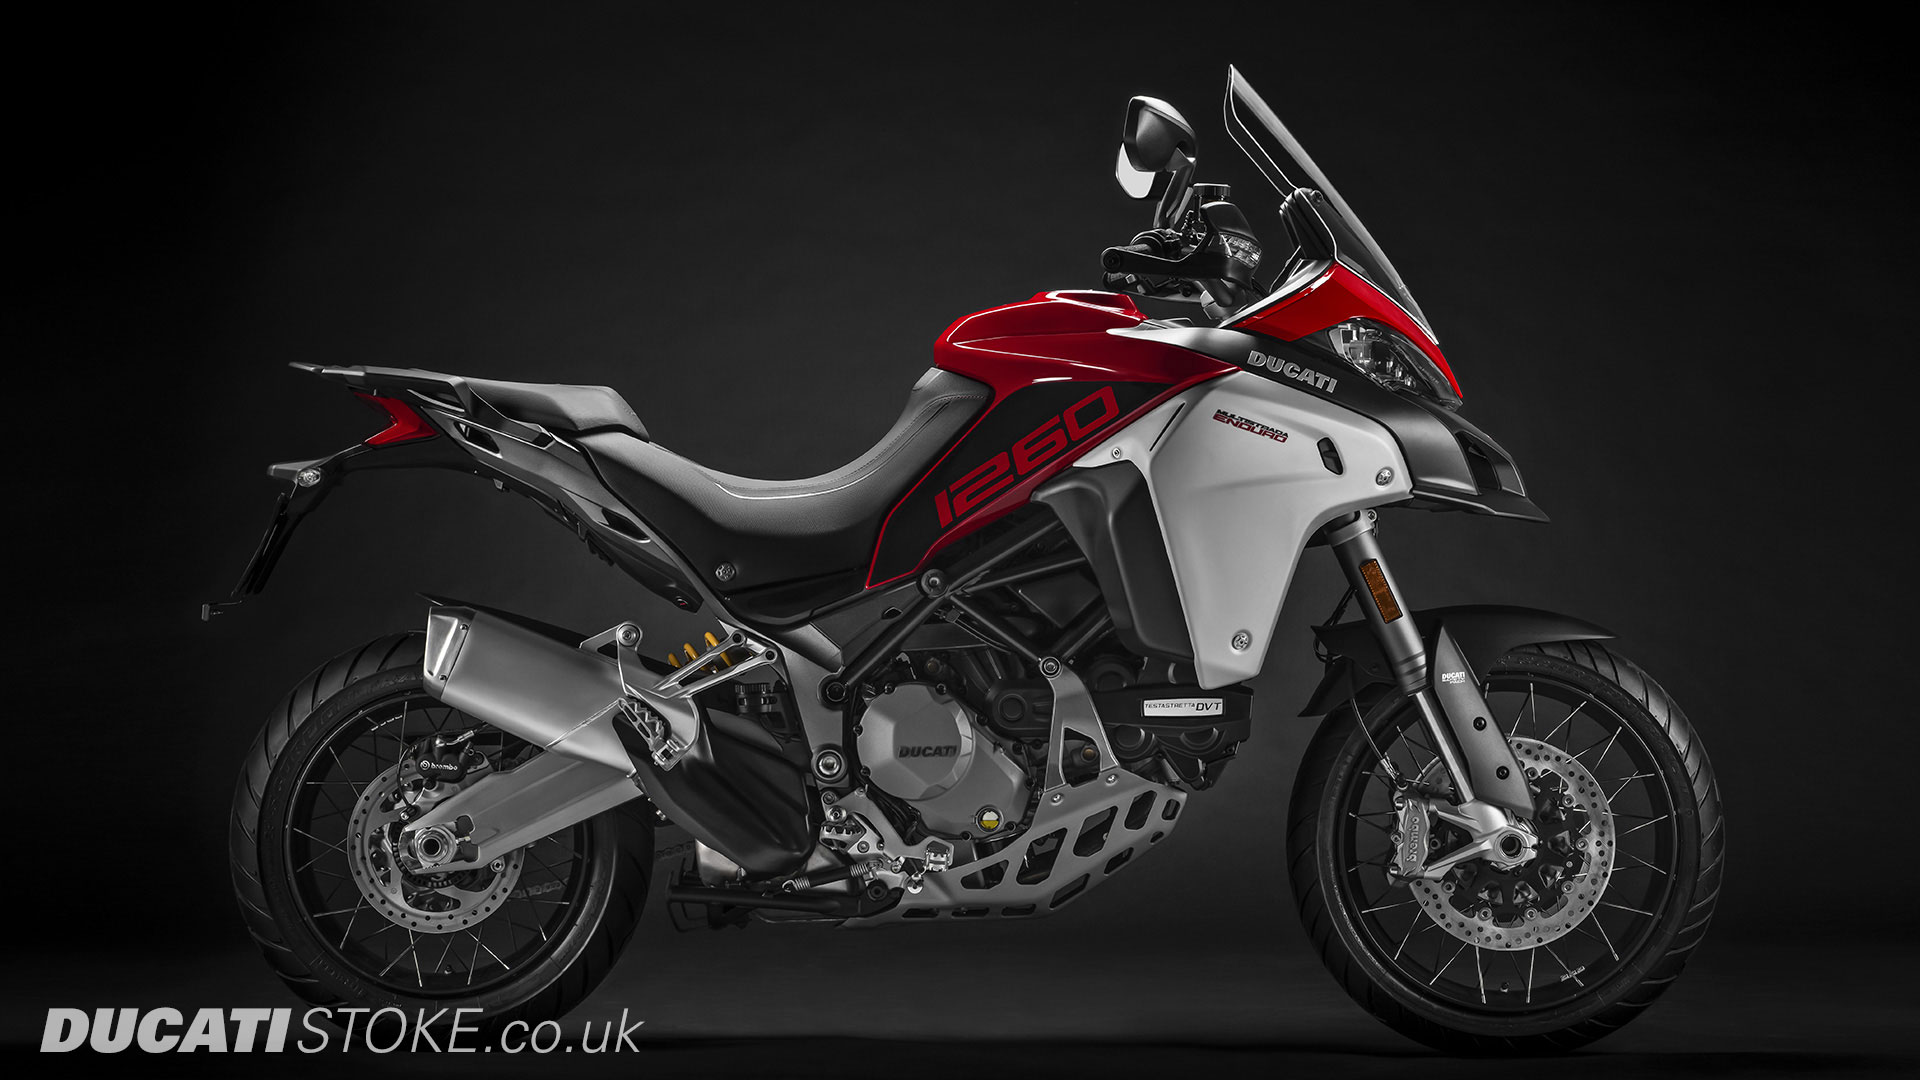 2019 Ducati Multistrada 1260 Enduro for sale at Ducati Stoke, Staffordshire, Scotland